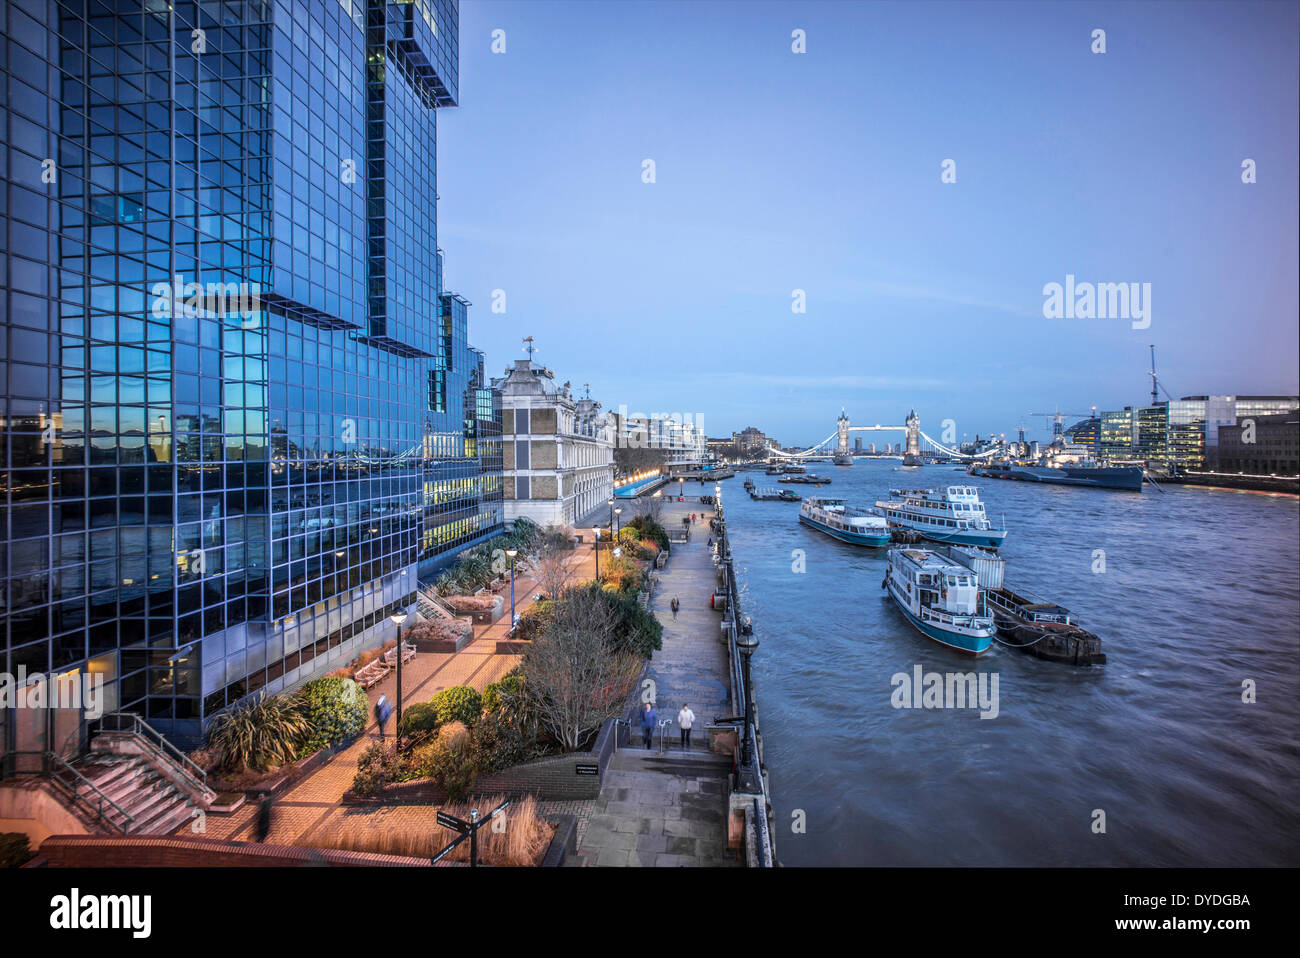 The River Thames and Tower Bridge. - Stock Image